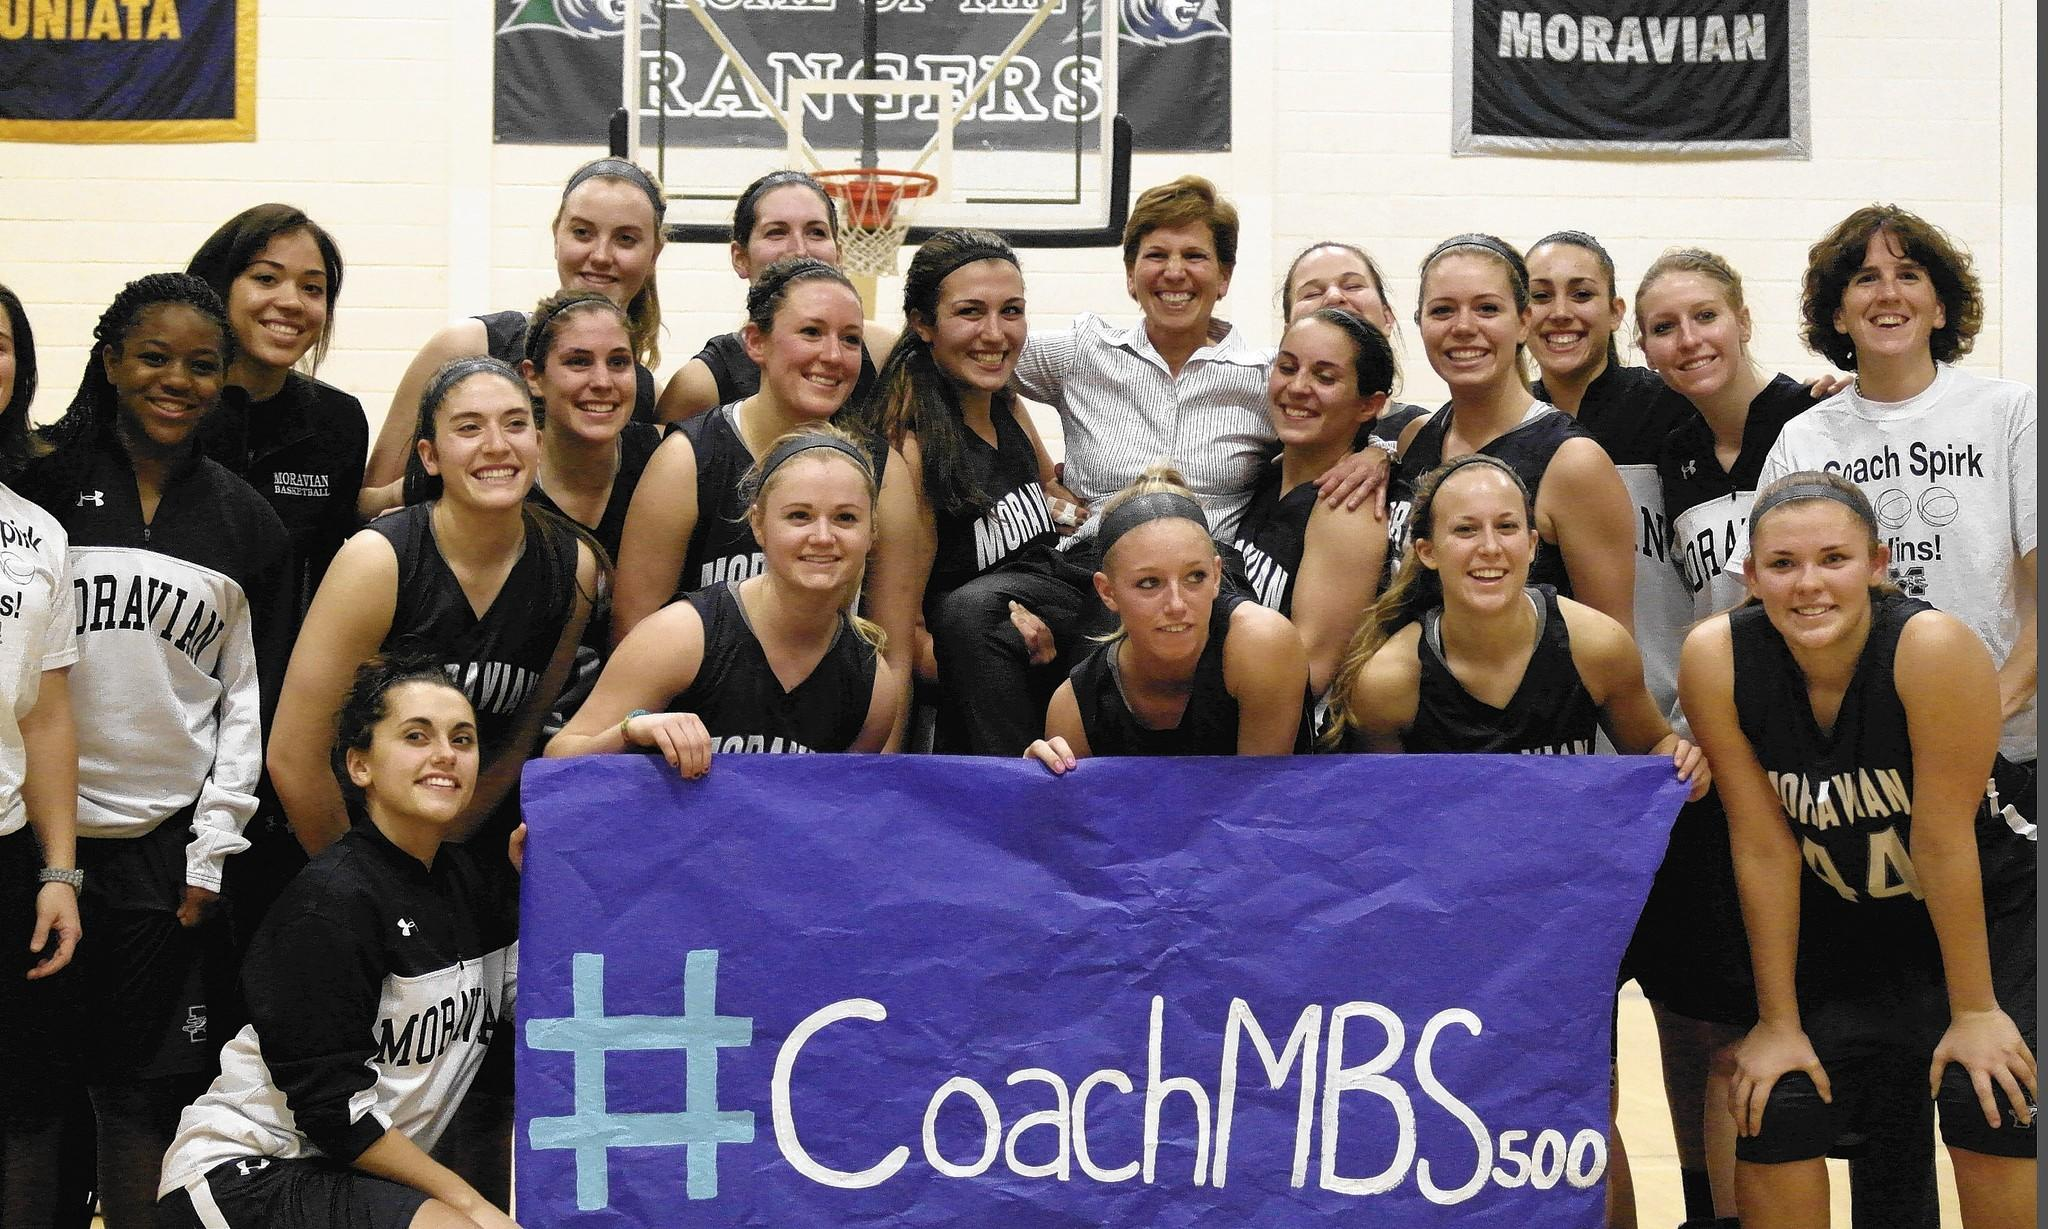 Moravian women's basketball coach Mary Beth Spirk (center with white shirt) celebrates her 500th coaching win with her players.